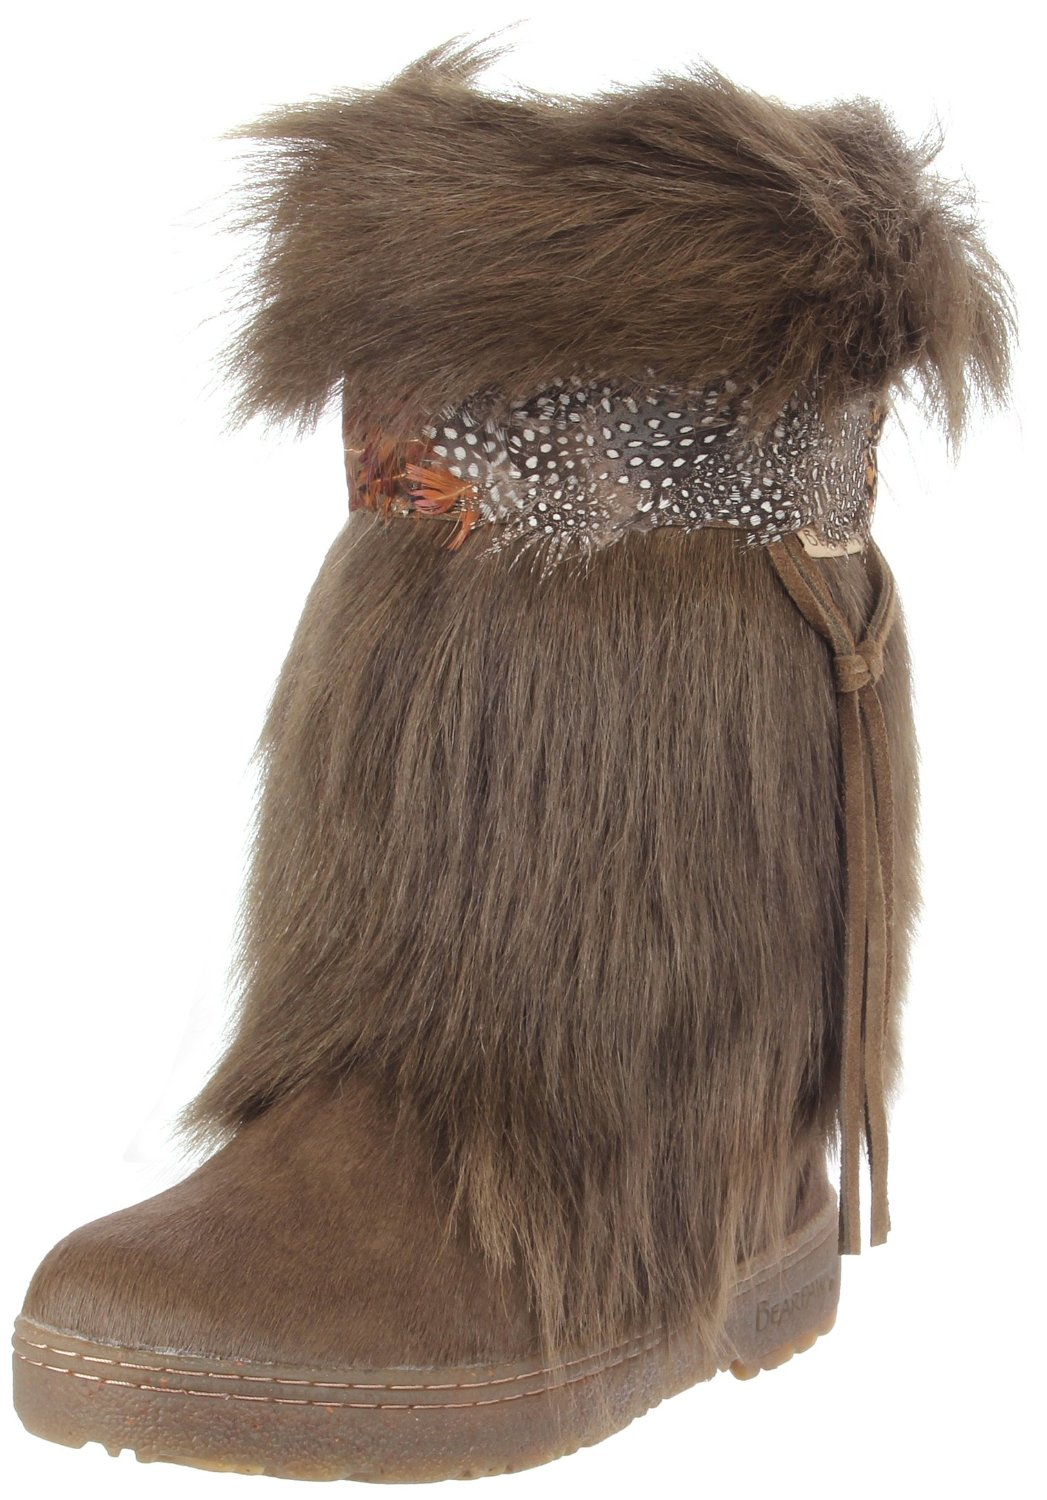 Prom Dresses 2018: Winter fur boots for women